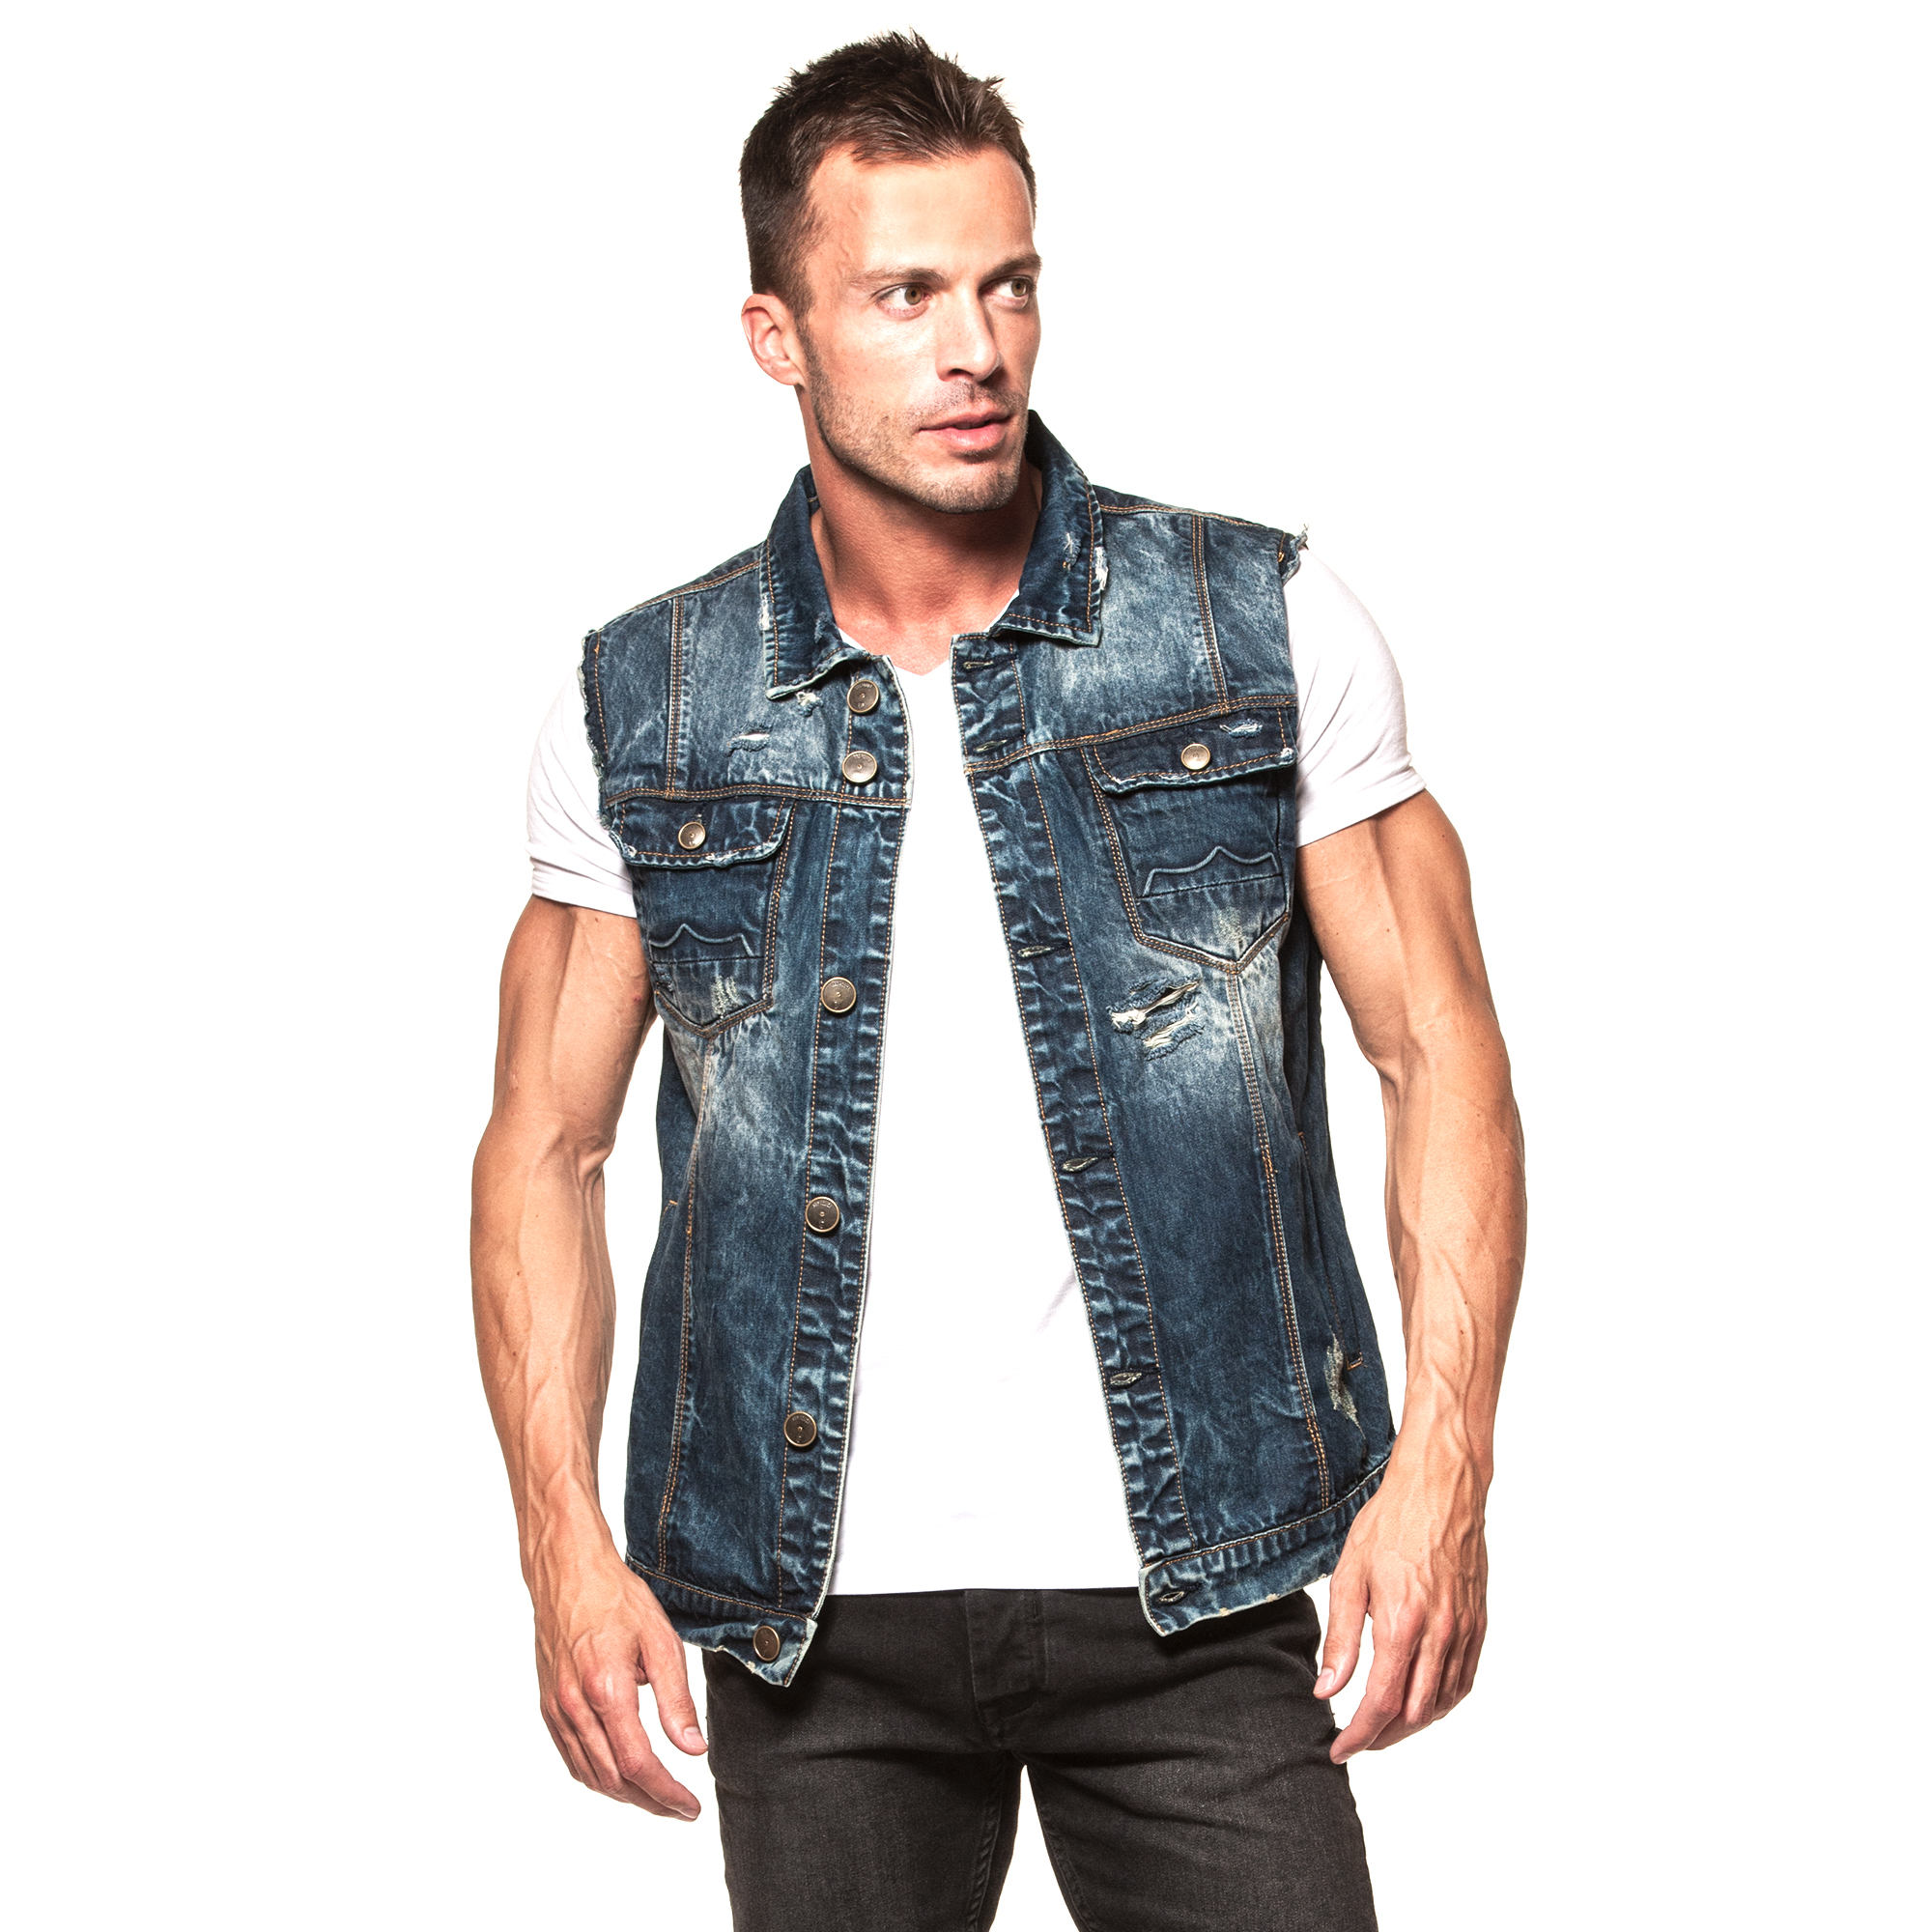 Men's Denim Gilets Vest Outdoor Multi Pockets Sleeveless Jacket Top Fishing Hunting Shooting Hiking $ 31 2 out of 5 stars 1. Allonly. Men's Retro Ripped Denim Vest Sleeveless Cowboy Jeans Jacket Vest With Broken Holes $ 32 Realdo. Mens Denim Jacket, Clearance Sale Men's Solid Color Vintage Button Tops Coat with Pocket.